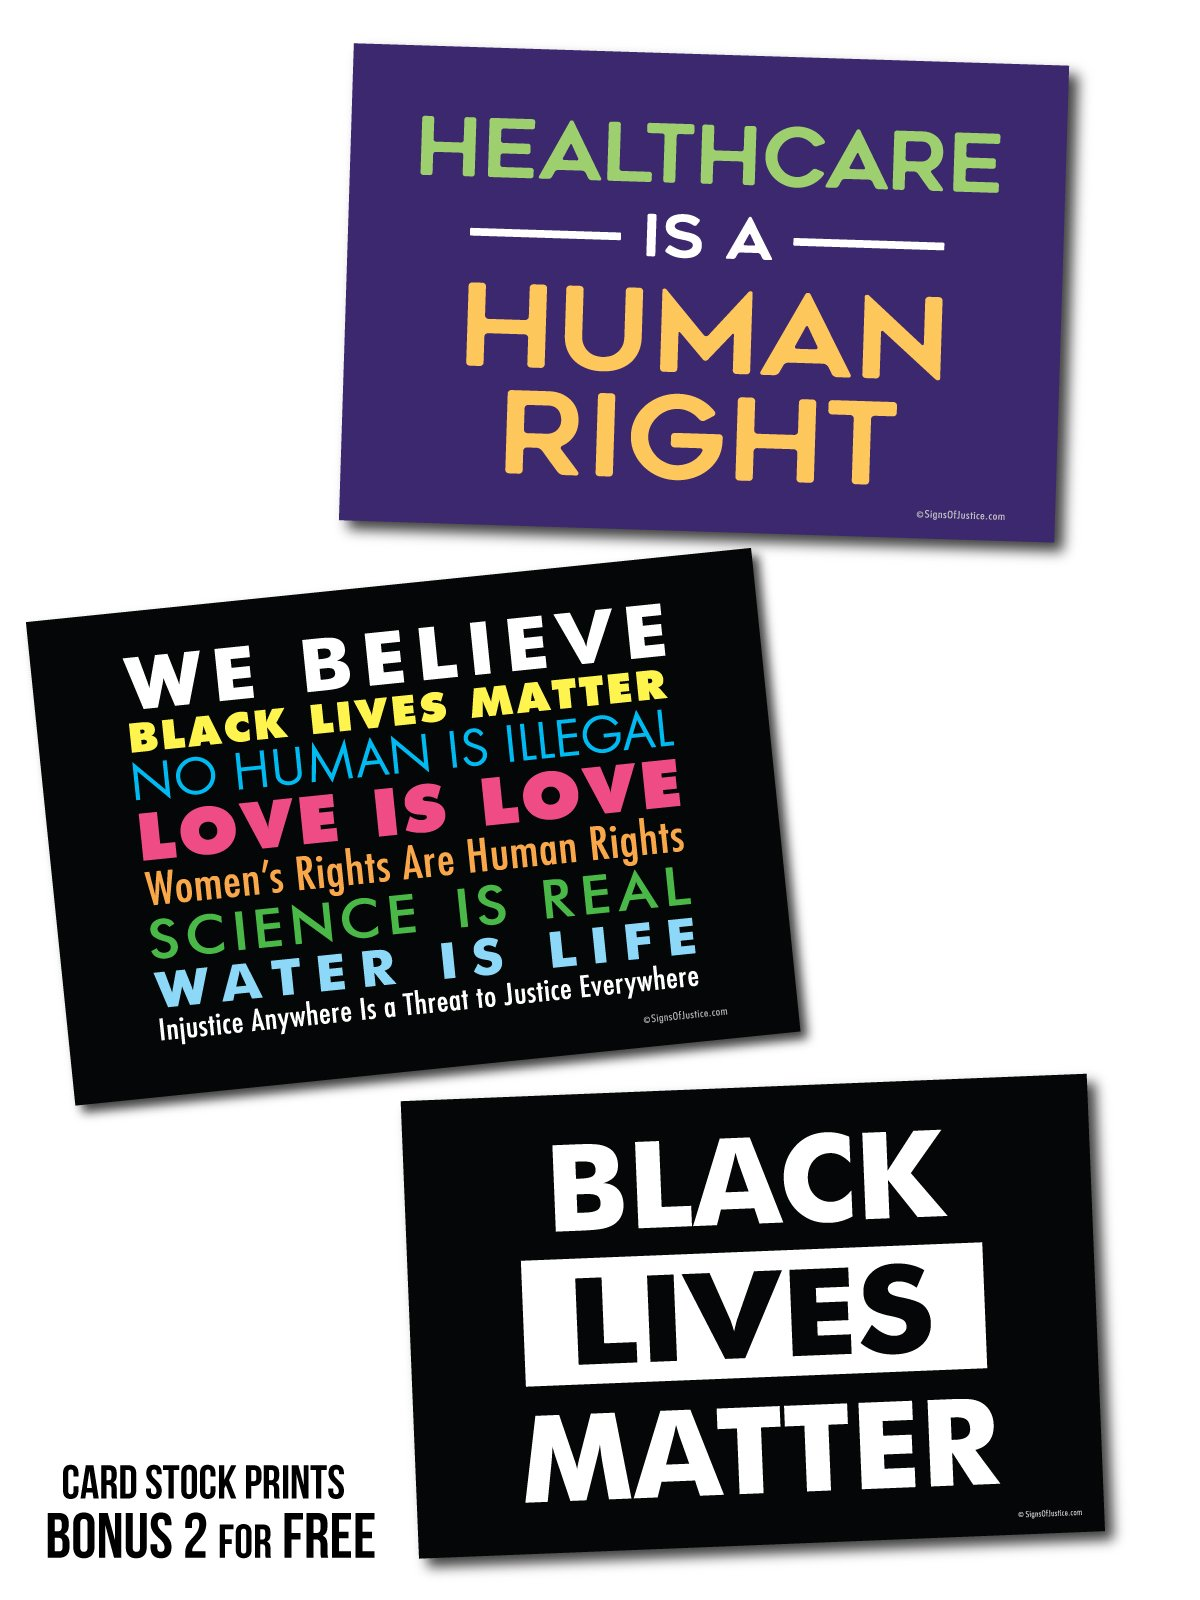 3 Posters or Protest Signs - We Believe, Healthcare is a Human Right, Black Lives Matter Card Stock Prints - Posters or Protest Signs - Buy 1 Get 2 Free (3 total) - 28''x18'' Double-Sided